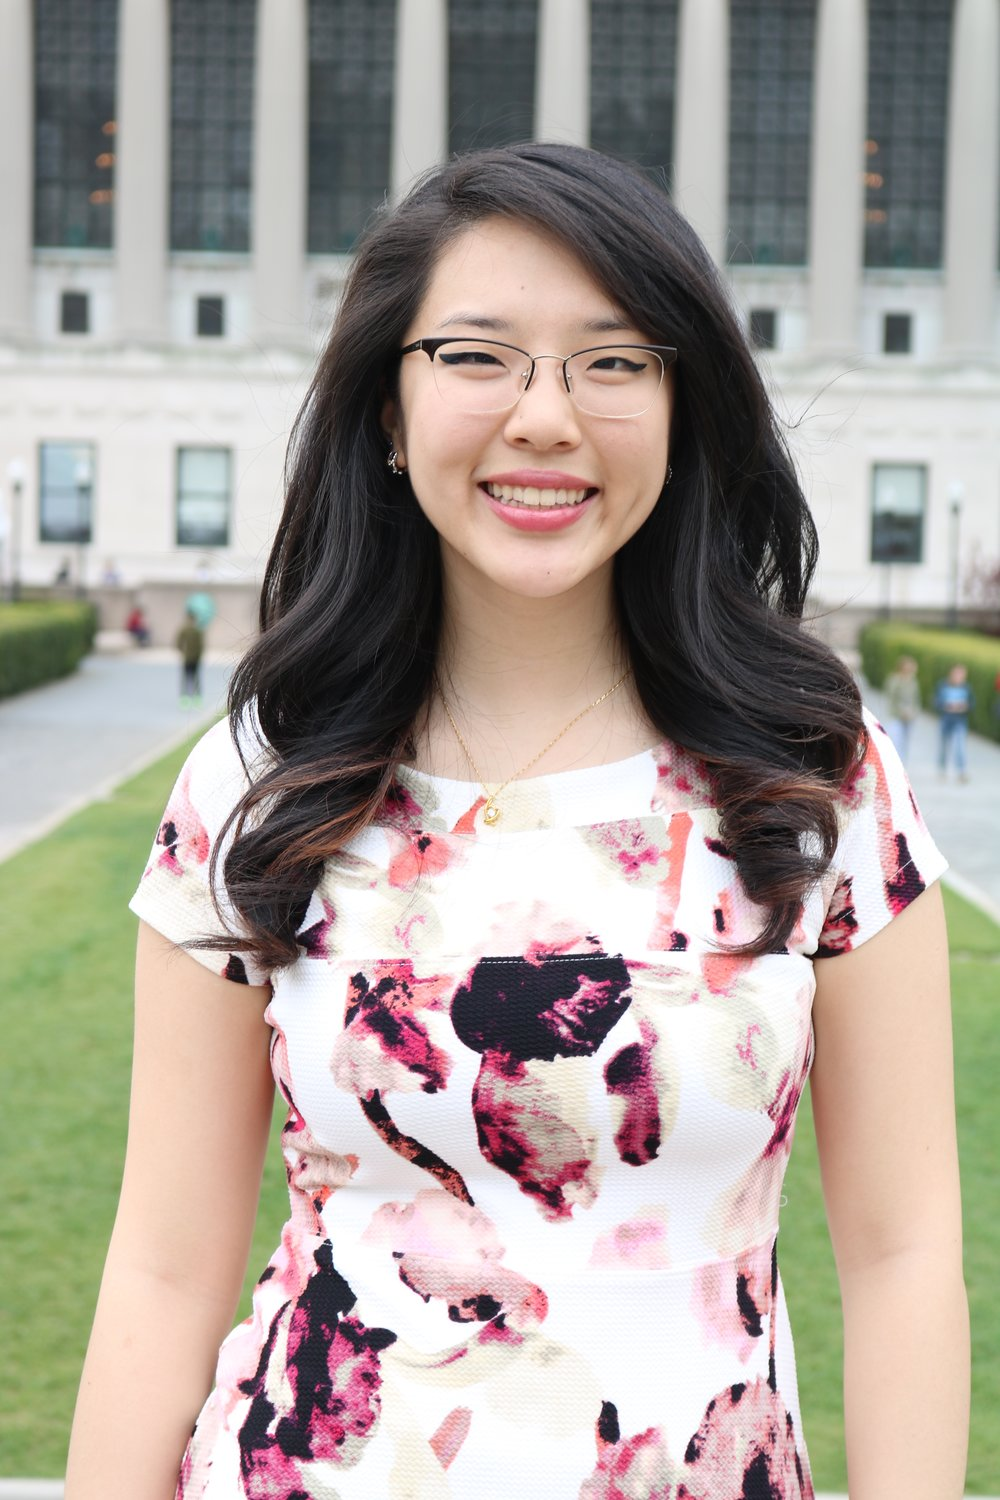 Margaret Zhu Treasurer Columbia College 2019 | Political Science & Business Management Las Vegas, NV Summer Plans: I am currently working as a Corporate Development Intern for EMI Music Publishing Management. Goals: Working with the Board, I am hoping to strengthen CWBS' core programs and sense of community! This year, I'm excited...about meeting more amazing Columbia women through CWBS! ✉ Email Margaret